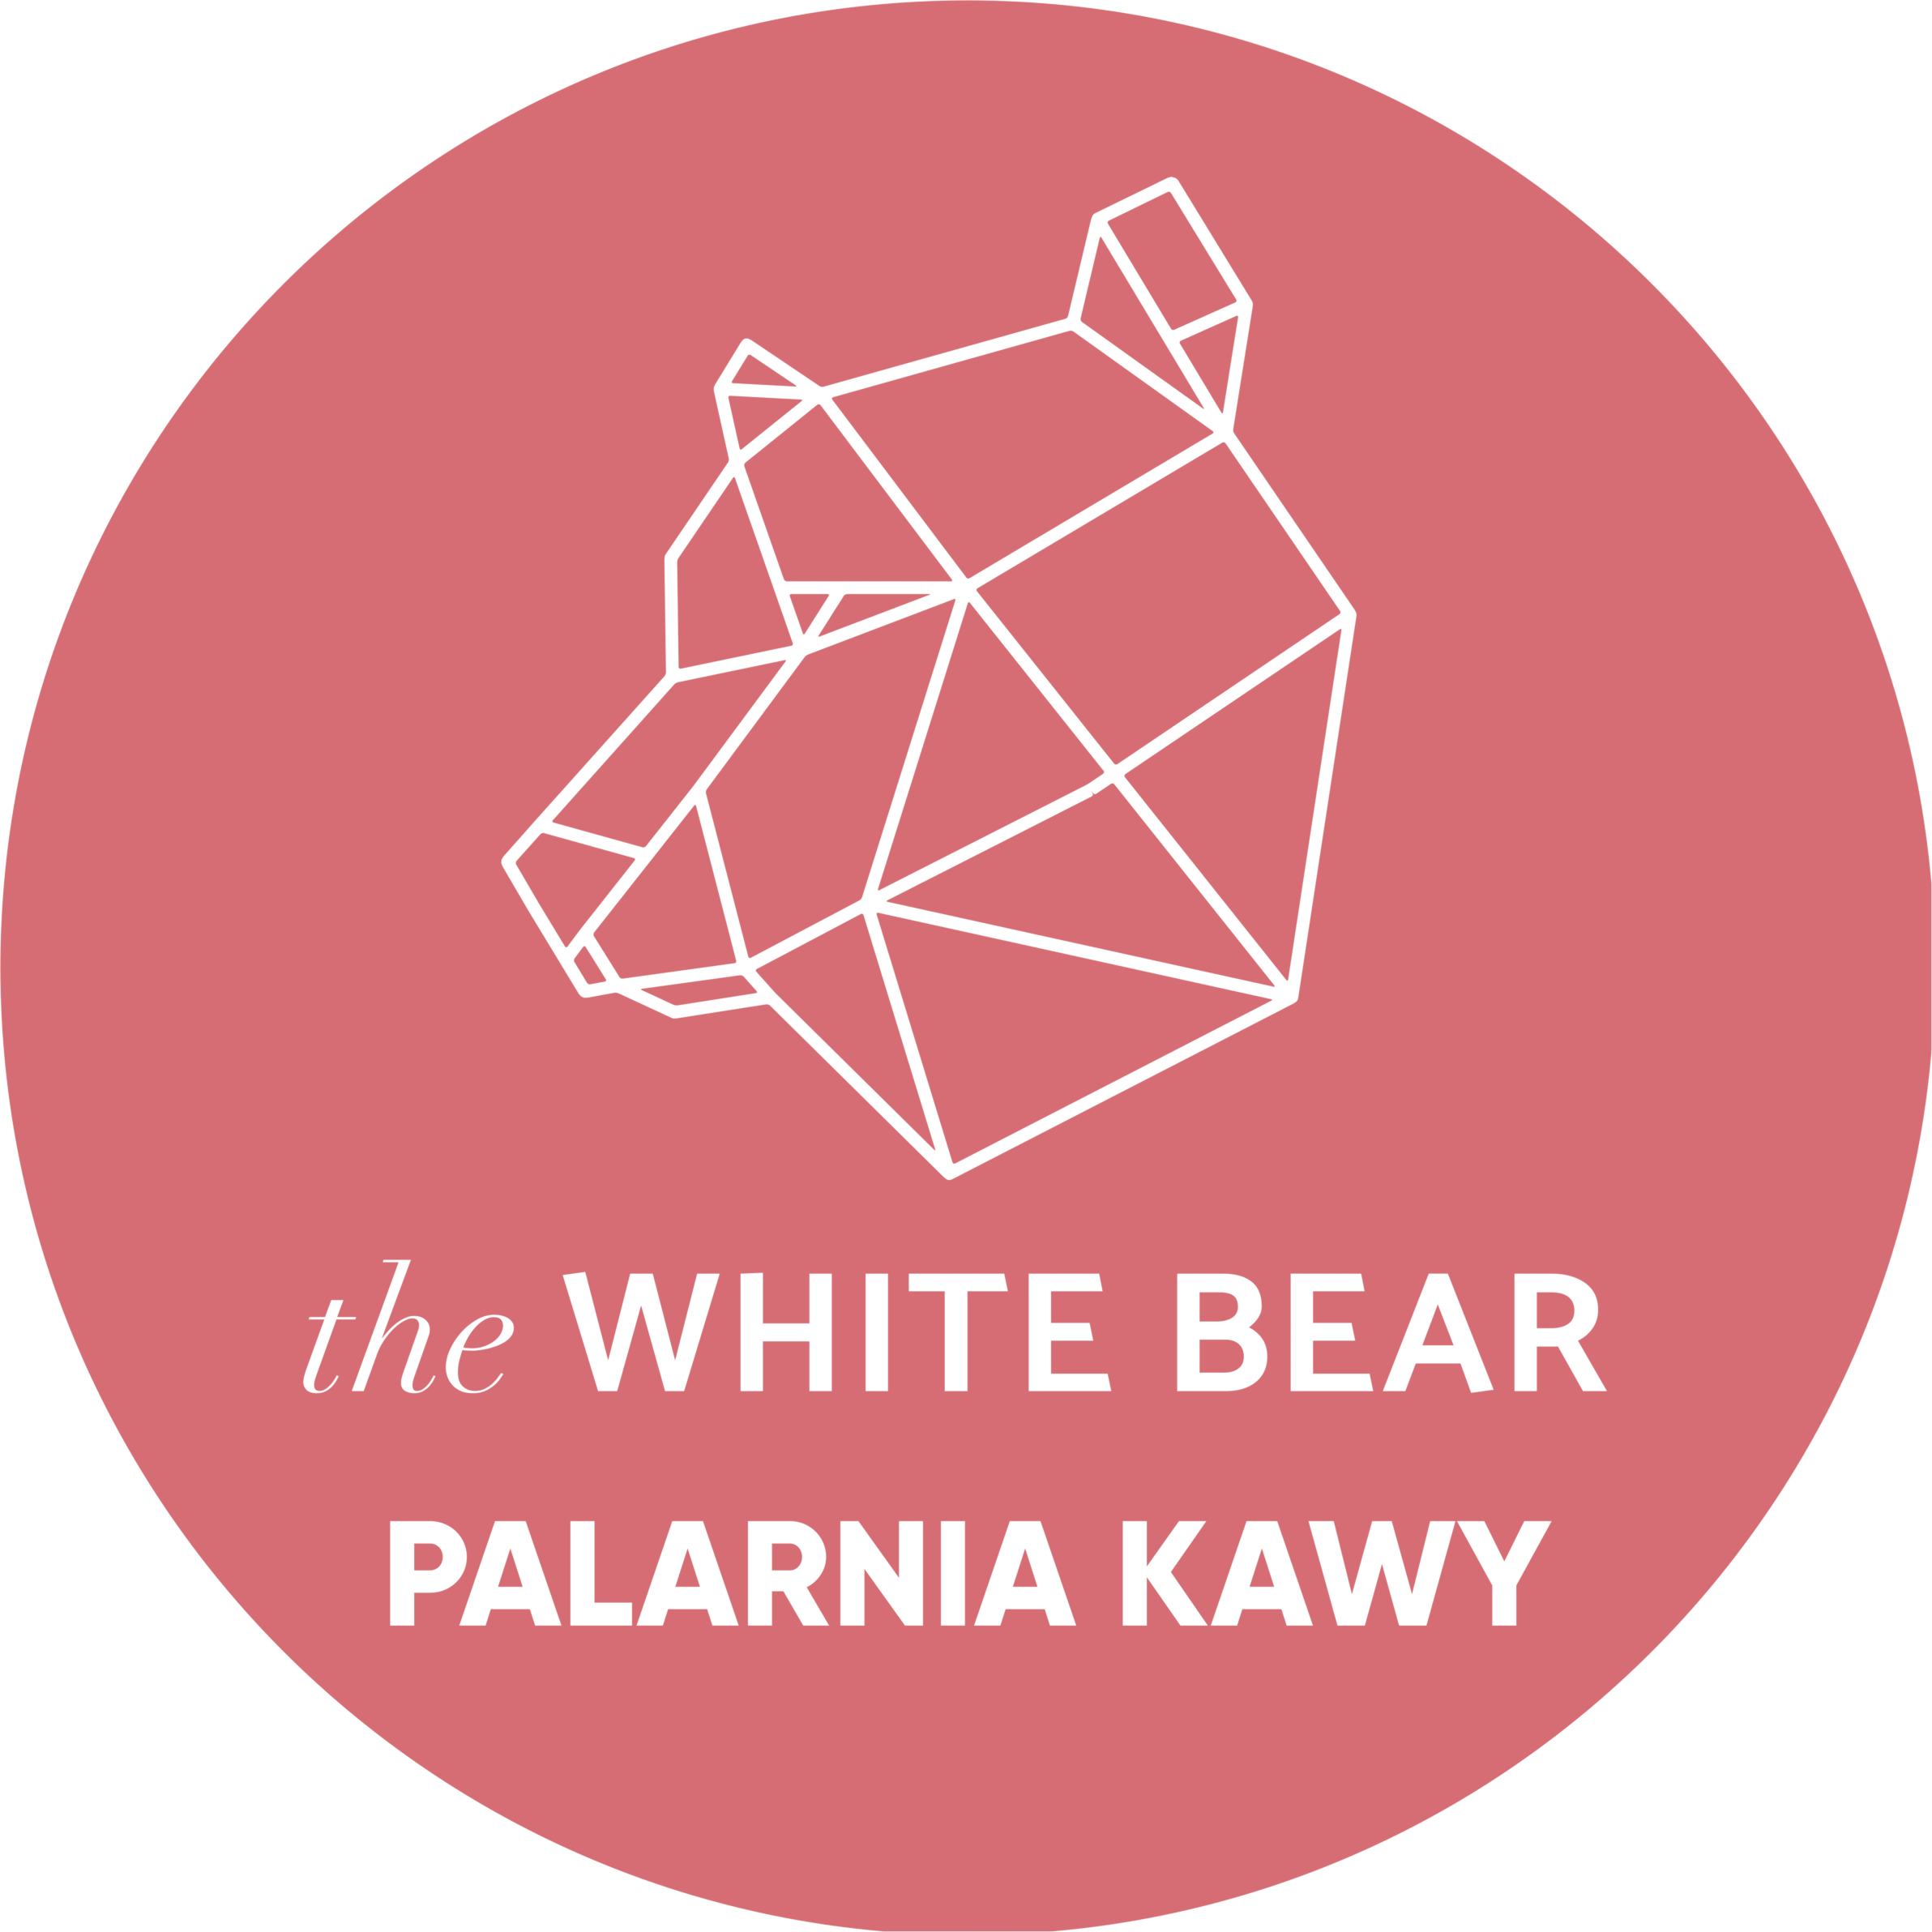 logo palarni kawy - the White Bear